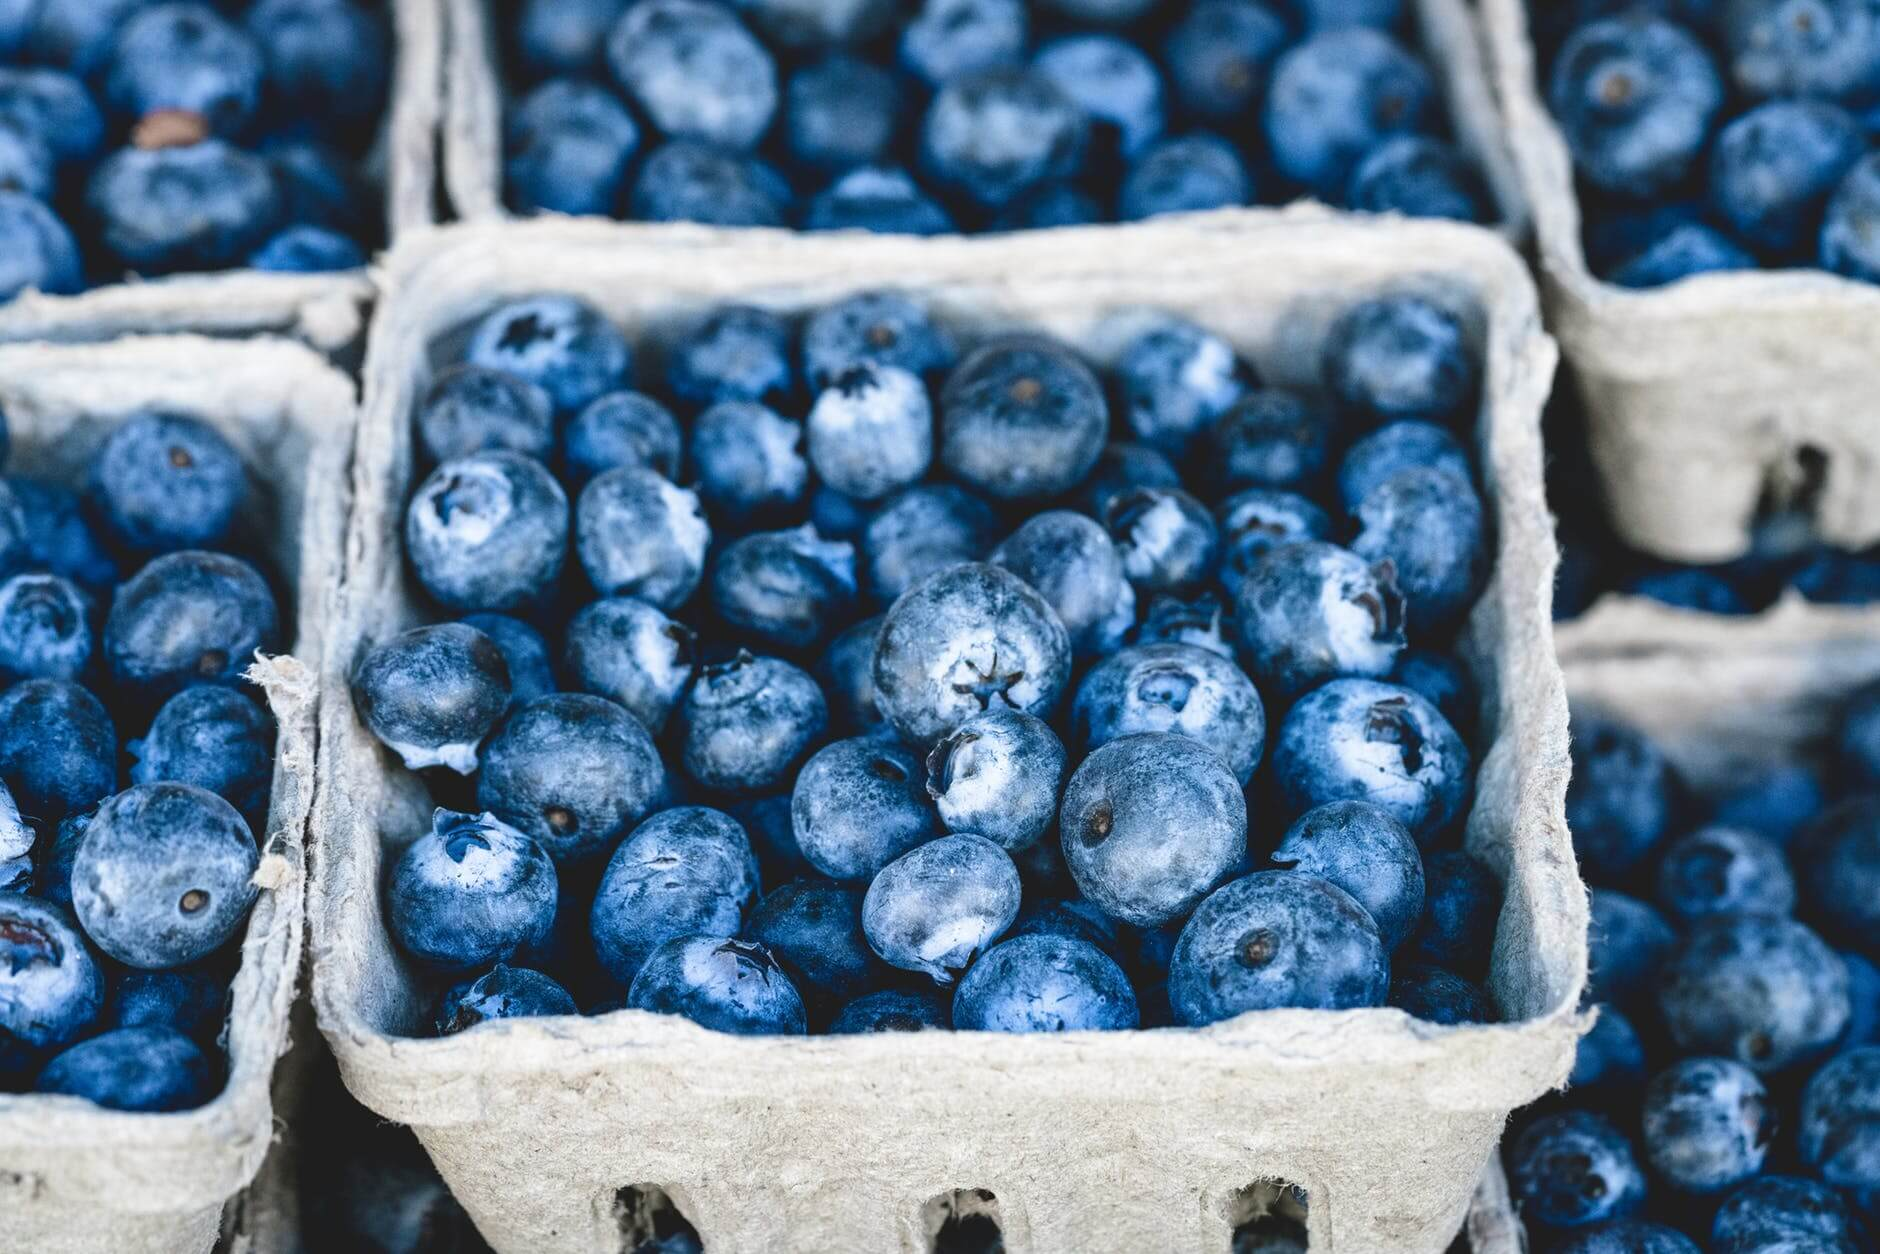 Dexter Blueberry Farm Opening Day